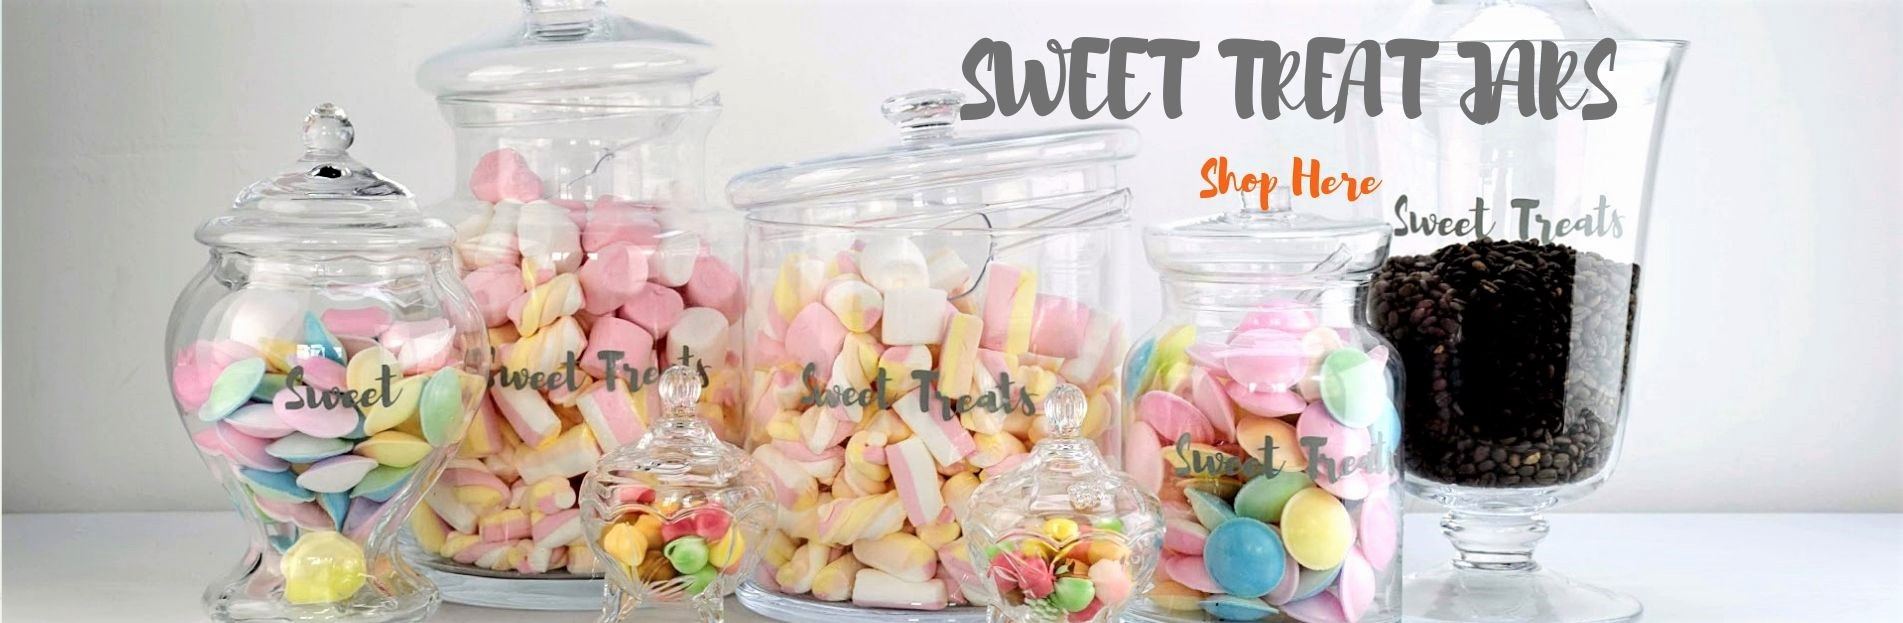 artisan sweet jars and bowls